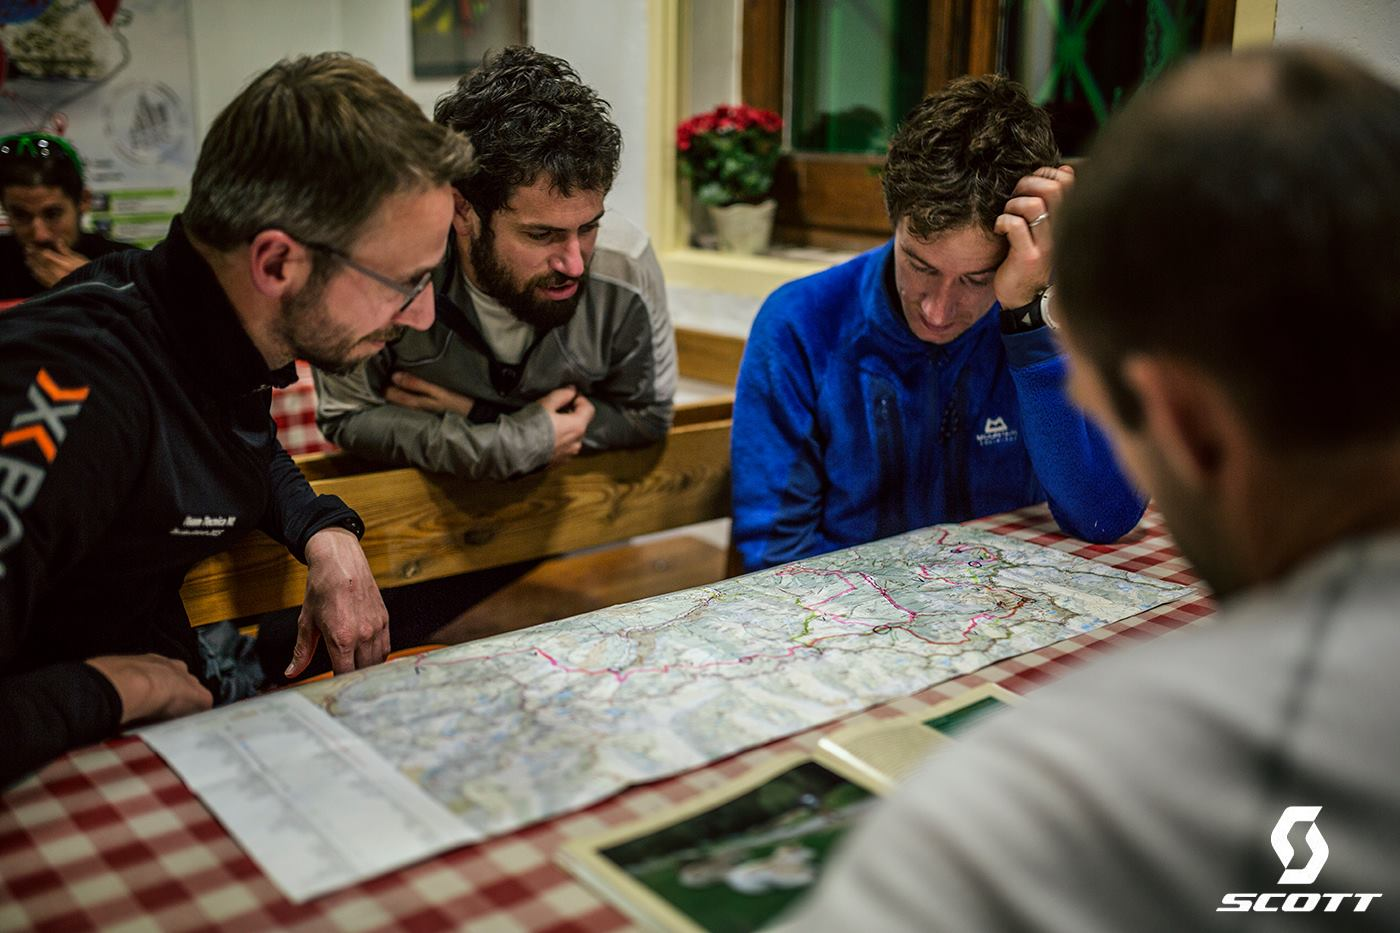 Proper study of the map in advance usually pays off. [This image is not from Spine Race, but from Els 2900].